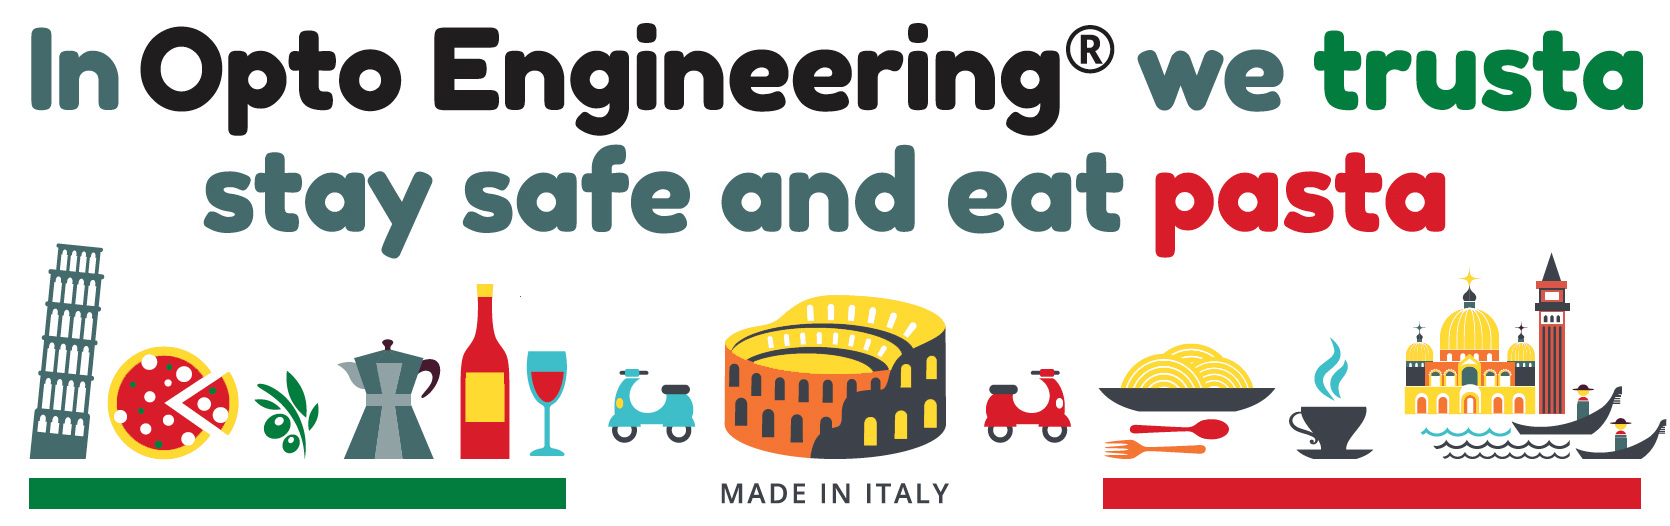 IN OPTO ENGINEERING® WE TRUSTA, STAY SAFE AND EAT PASTA!